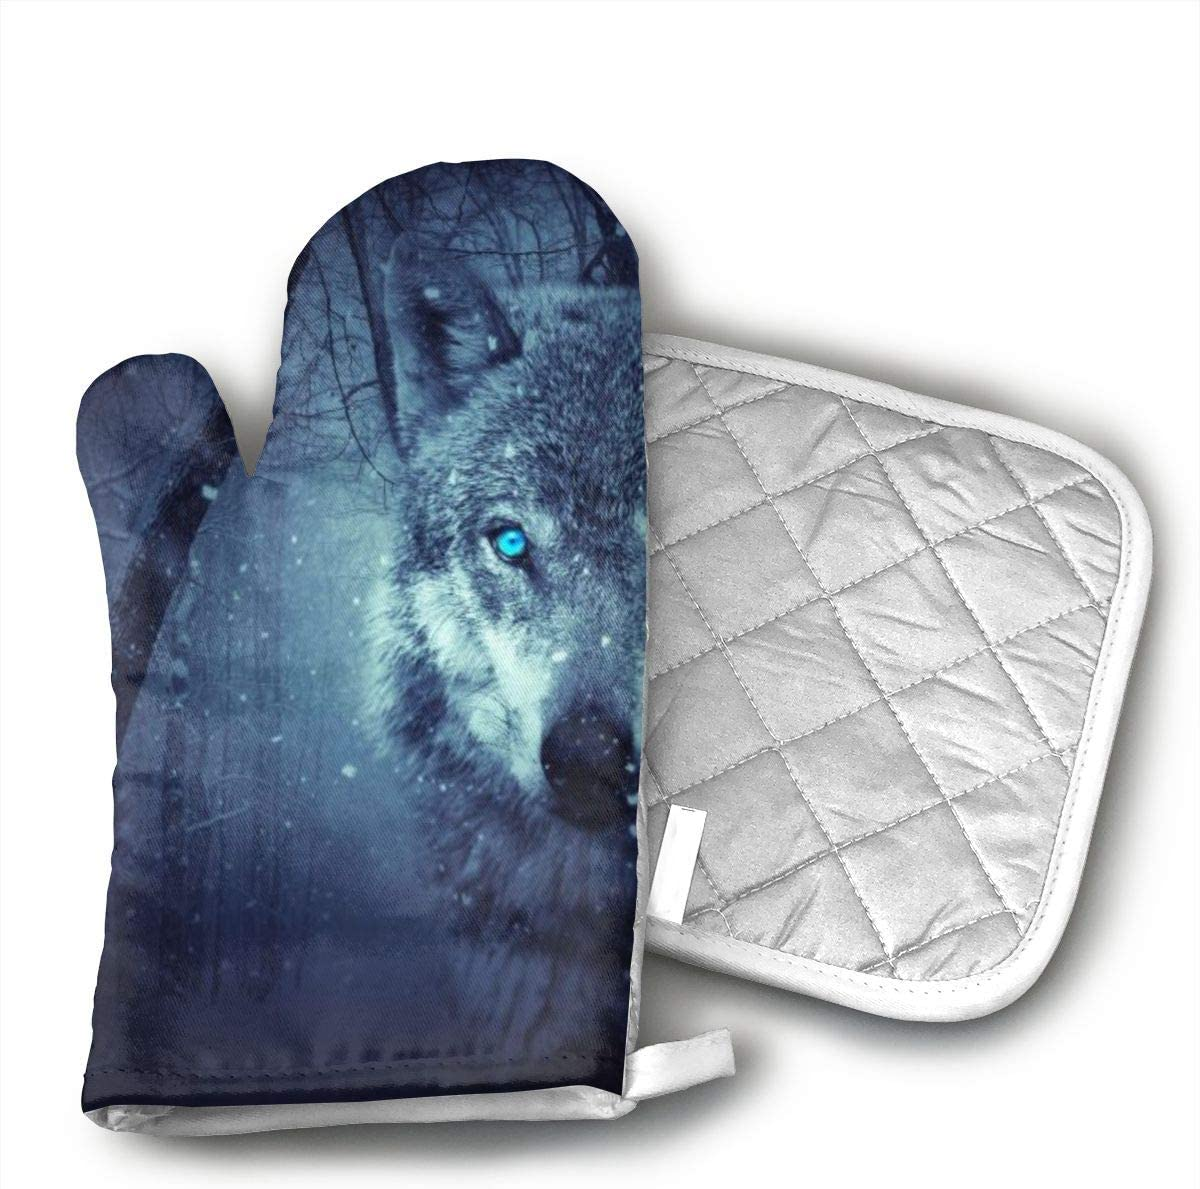 CHWEYAQ ZVNQYGFGA69 Fantasy Wolf Oven Gloves, Smart Home, Long, Mittens, Heat Resistant, Extra Thick, Quilted